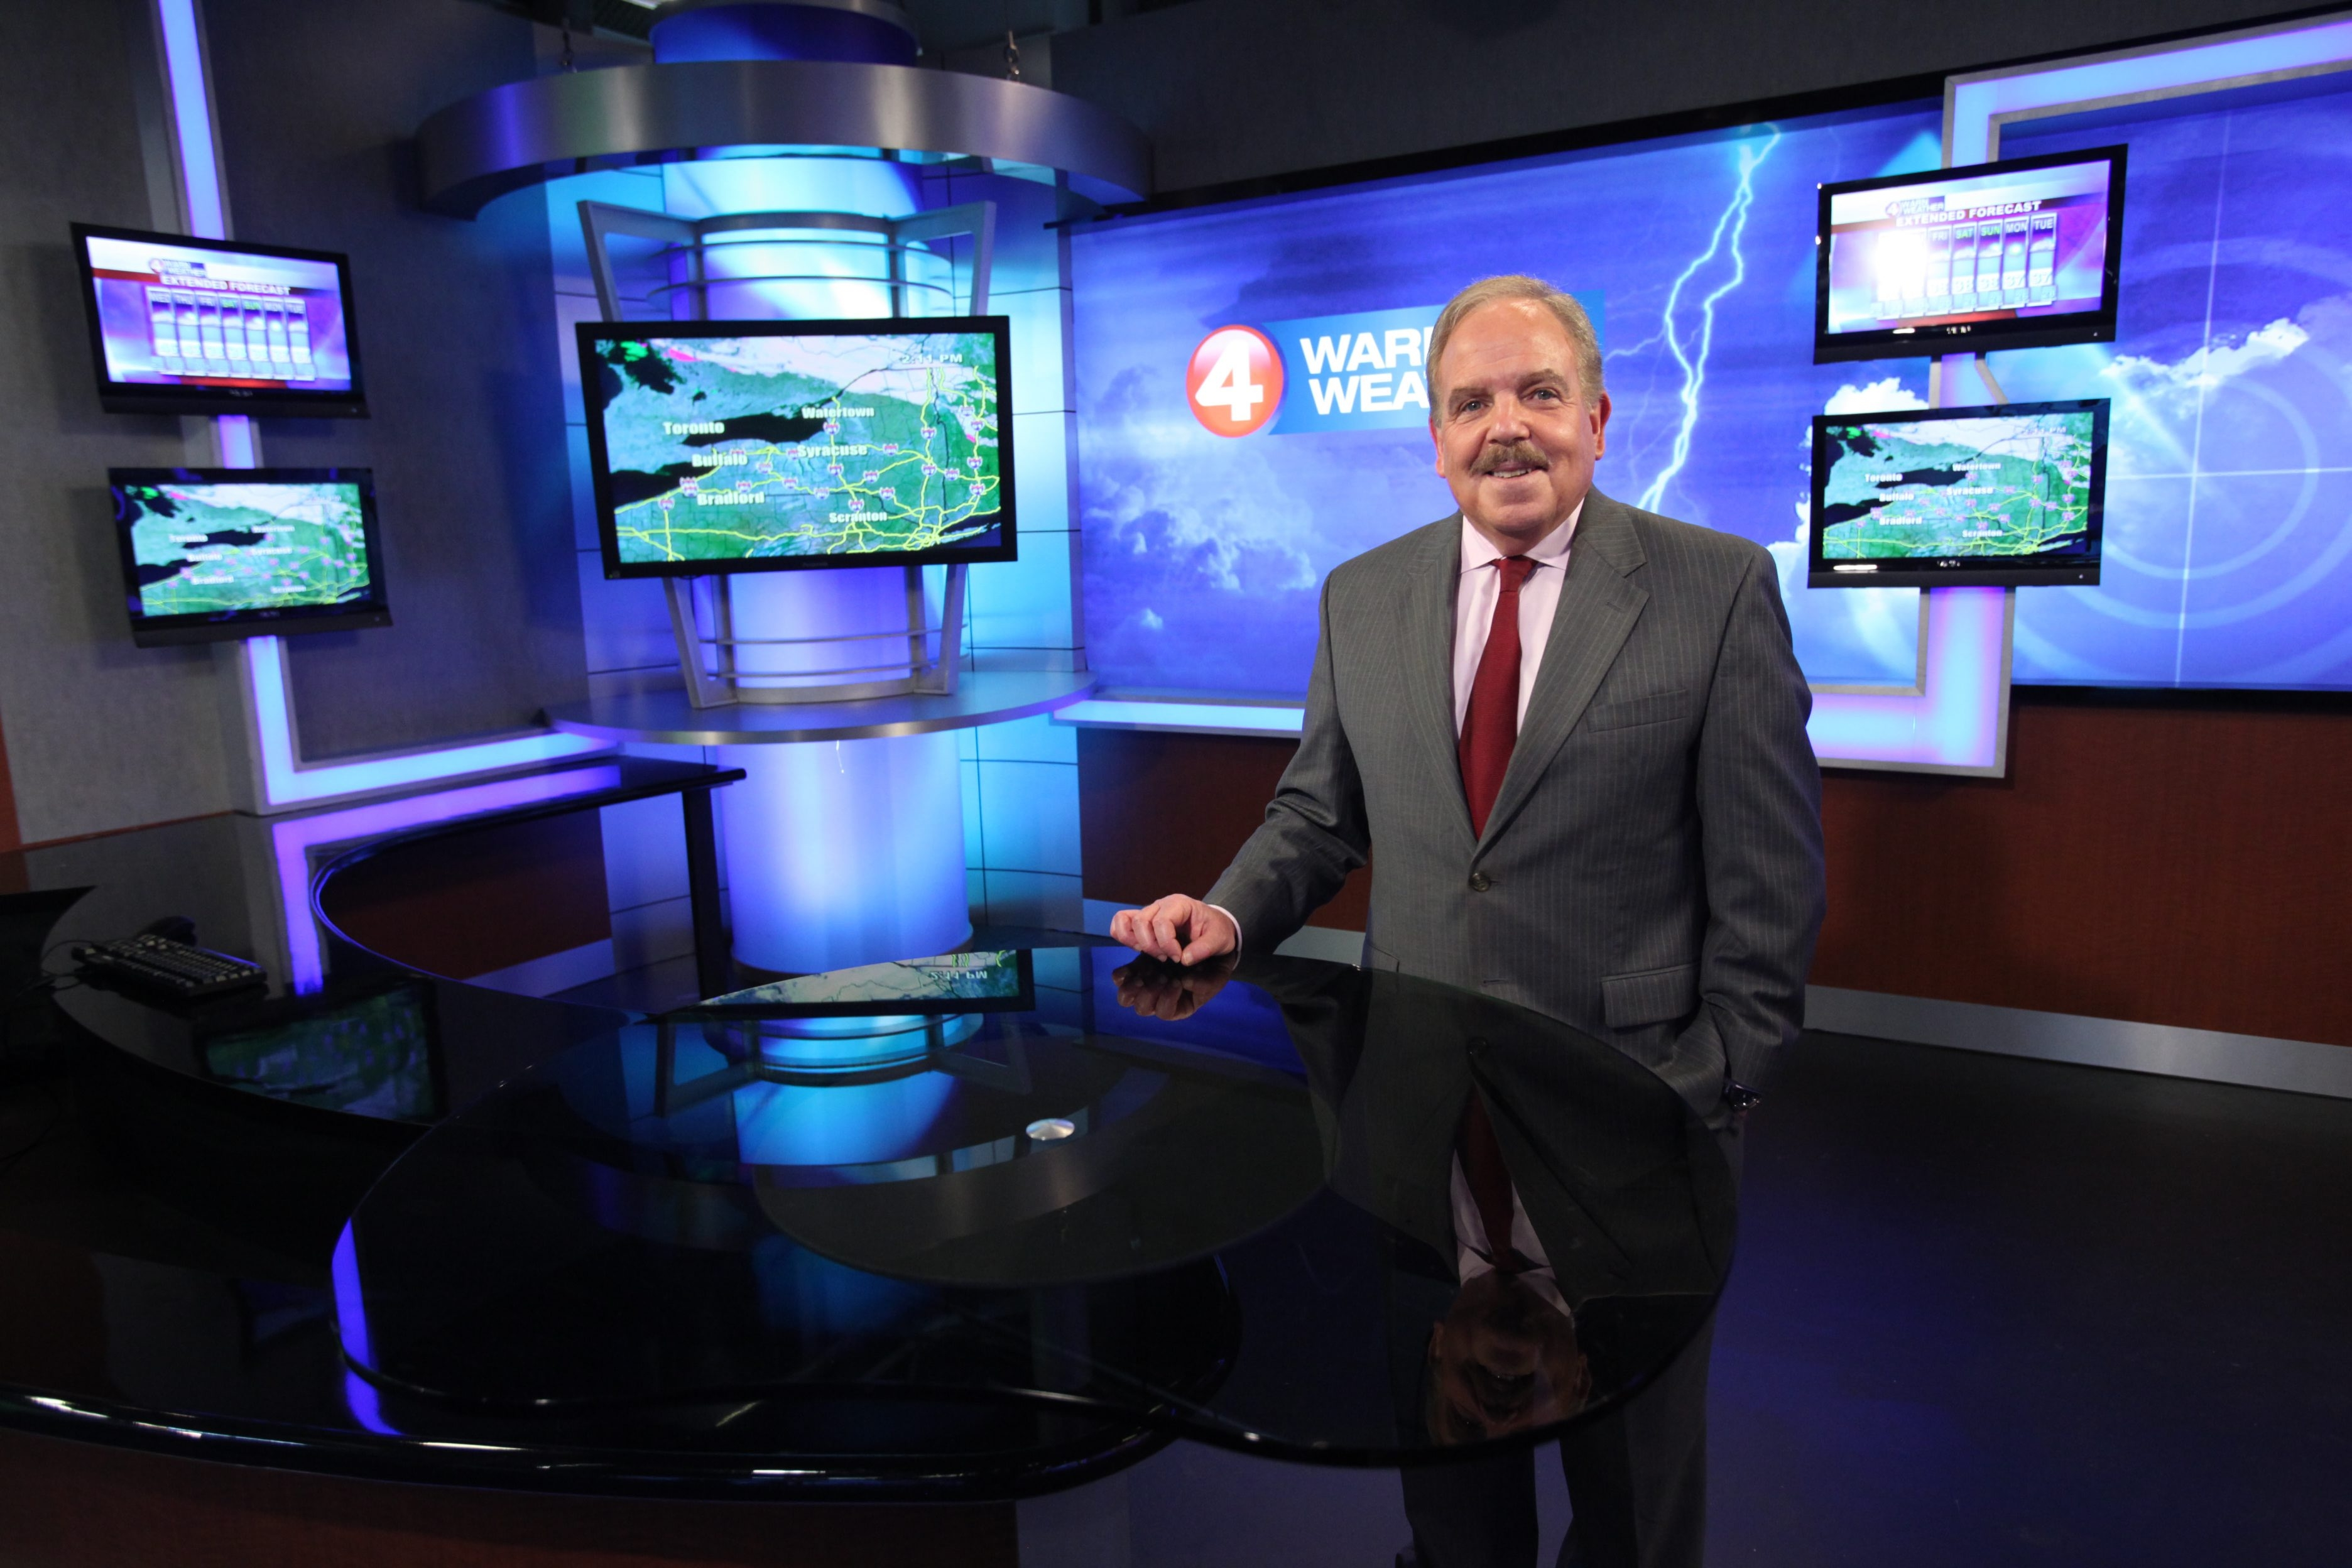 Meteorologist Don Paul says he is pleased with new deal.